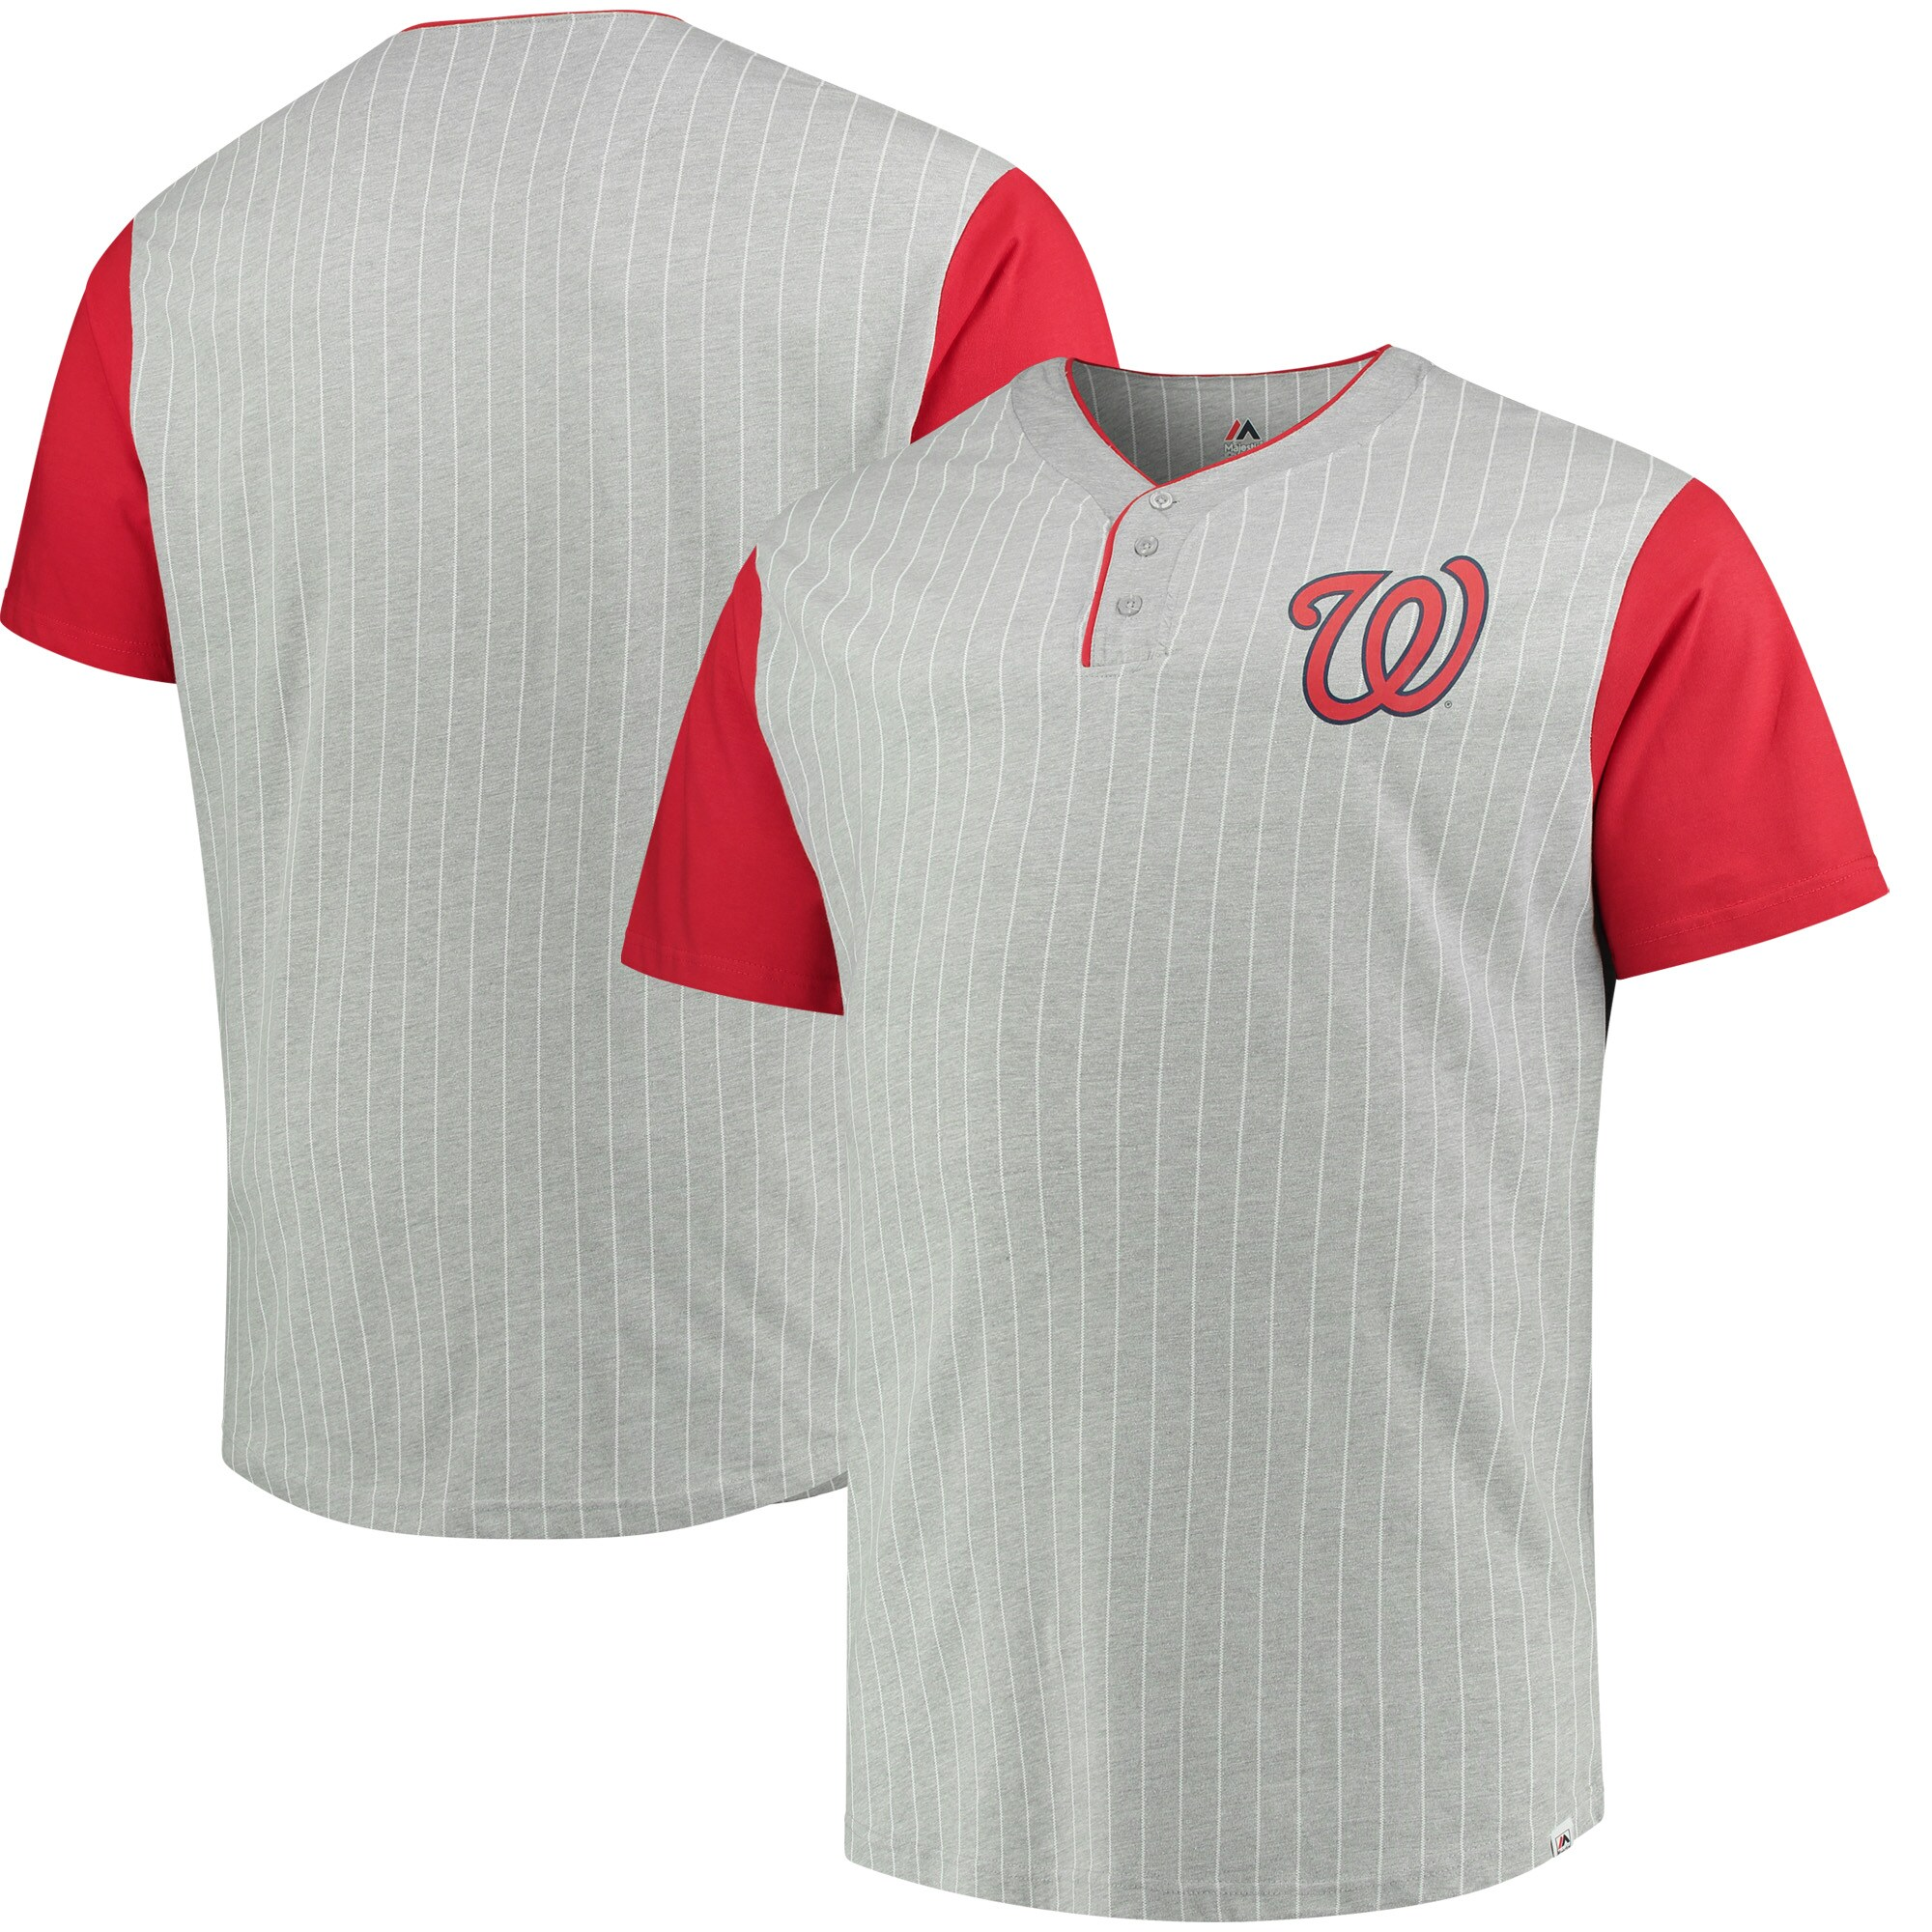 Washington Nationals Majestic Big & Tall Life or Death Pinstripe Henley T-Shirt - Gray/Red